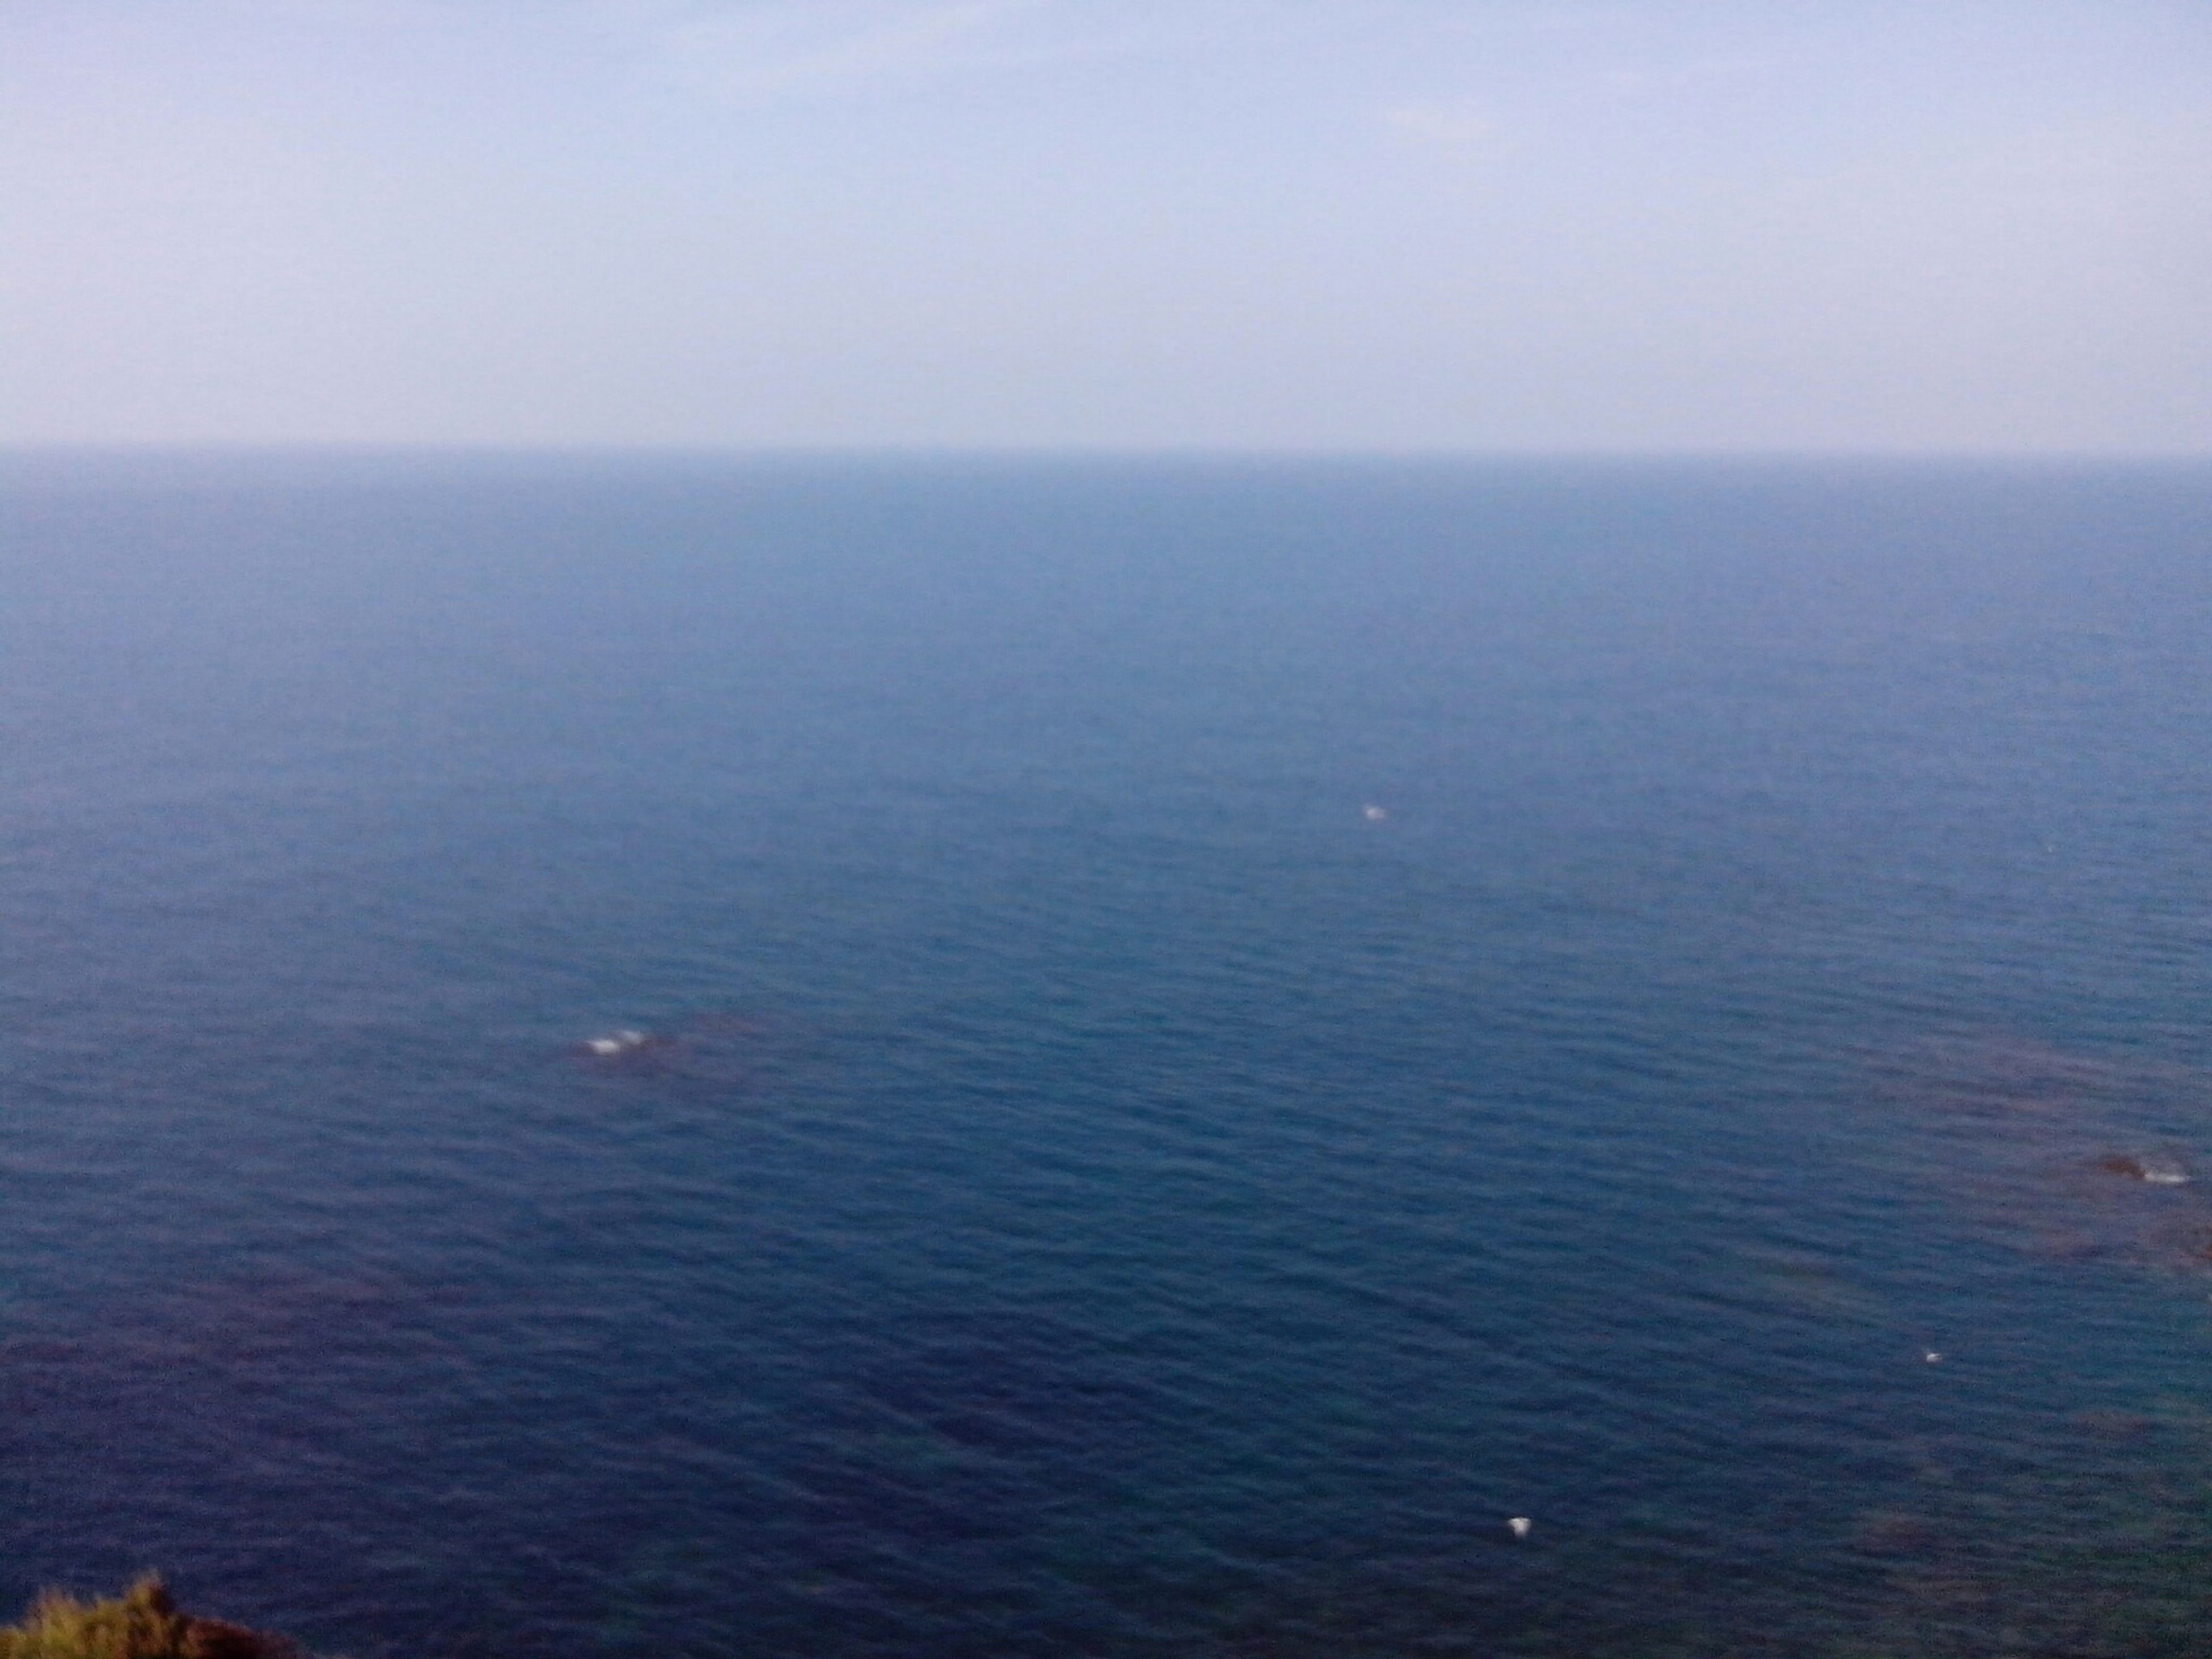 sea, horizon over water, water, tranquil scene, tranquility, scenics, beauty in nature, copy space, clear sky, nature, seascape, waterfront, idyllic, sky, rippled, blue, remote, calm, ocean, outdoors